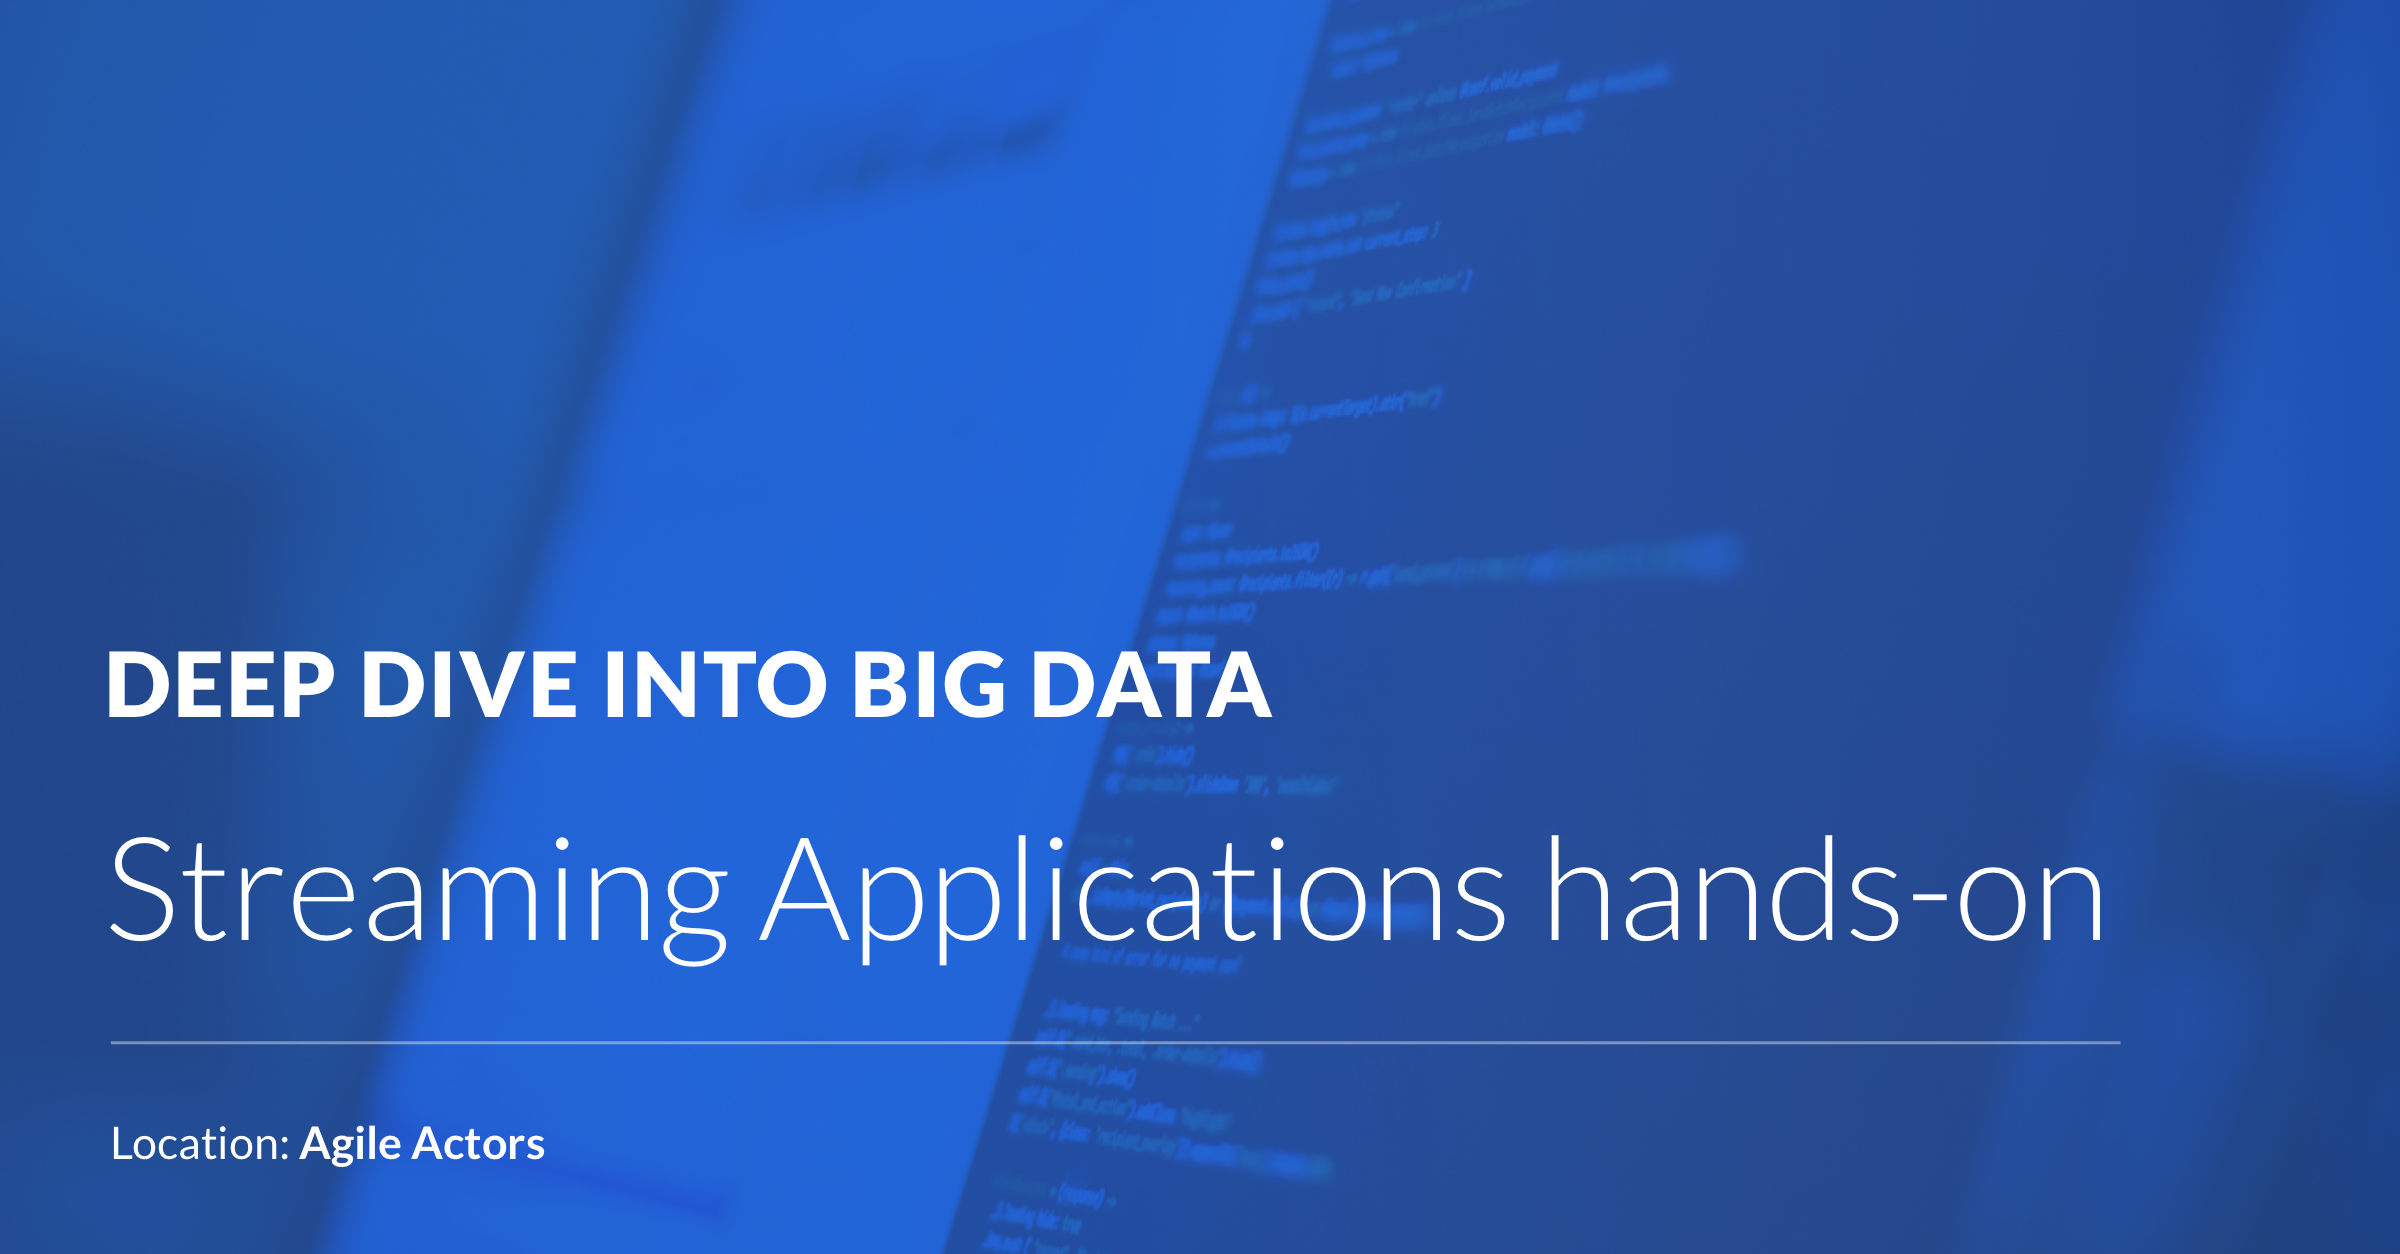 Deep Dive into Big Data – Streaming Applications hand-on